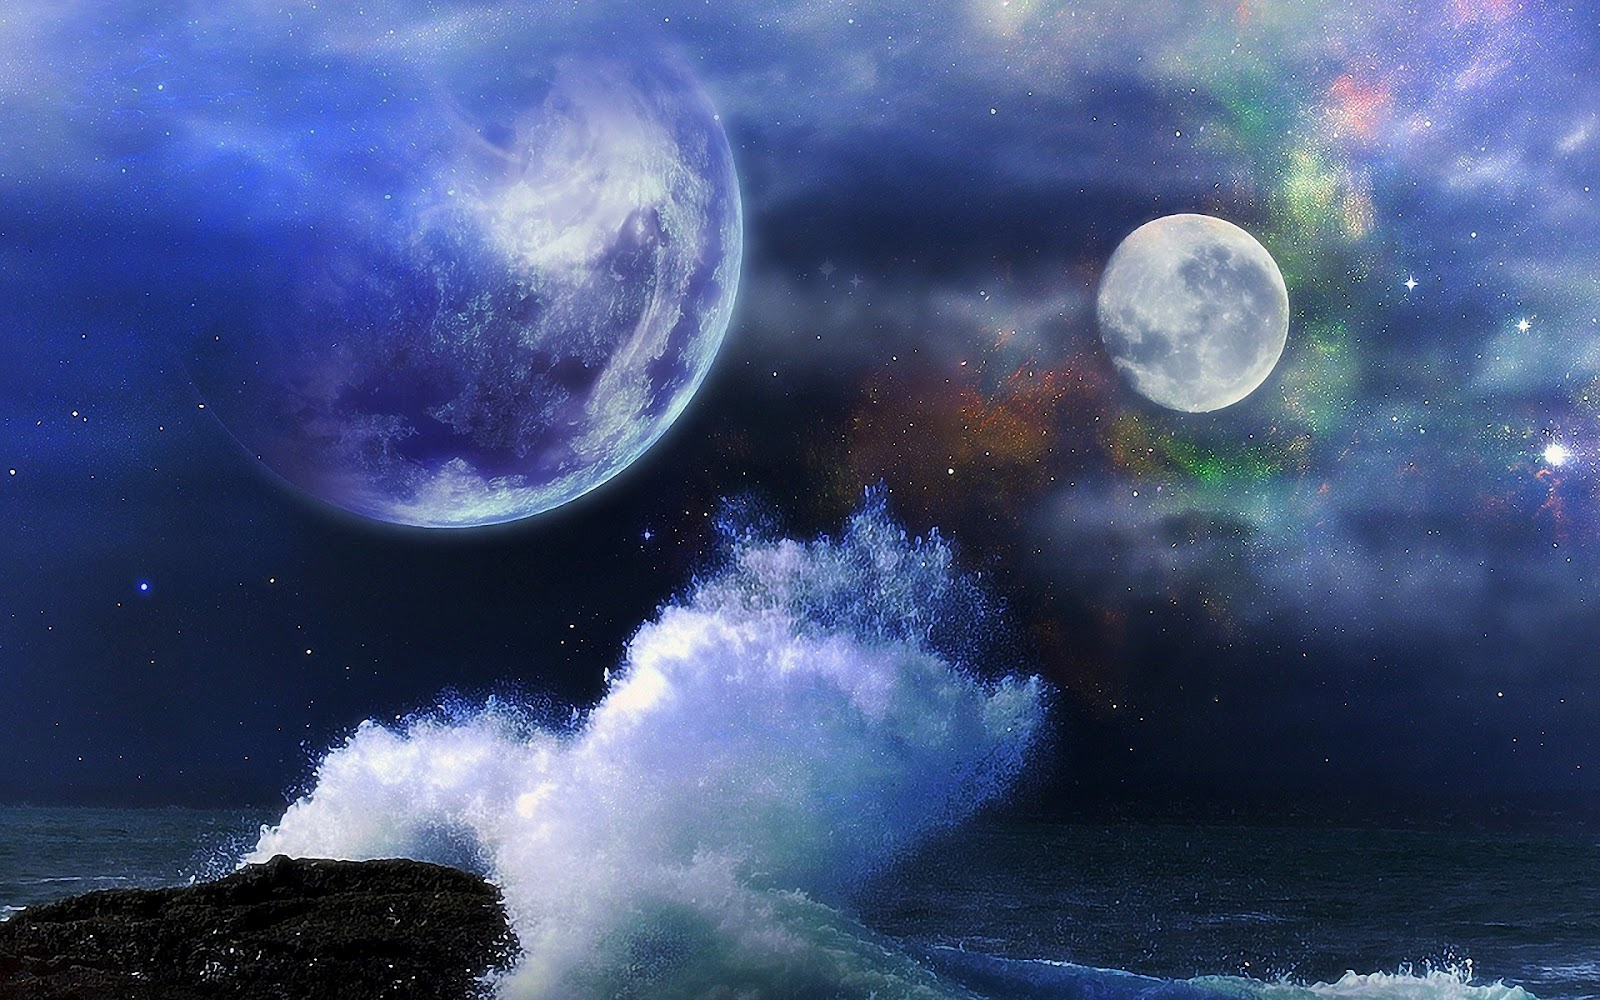 Free High Definition Wallpapers: Free High-Definition Wallpapers: Free Space Galaxy Desktop